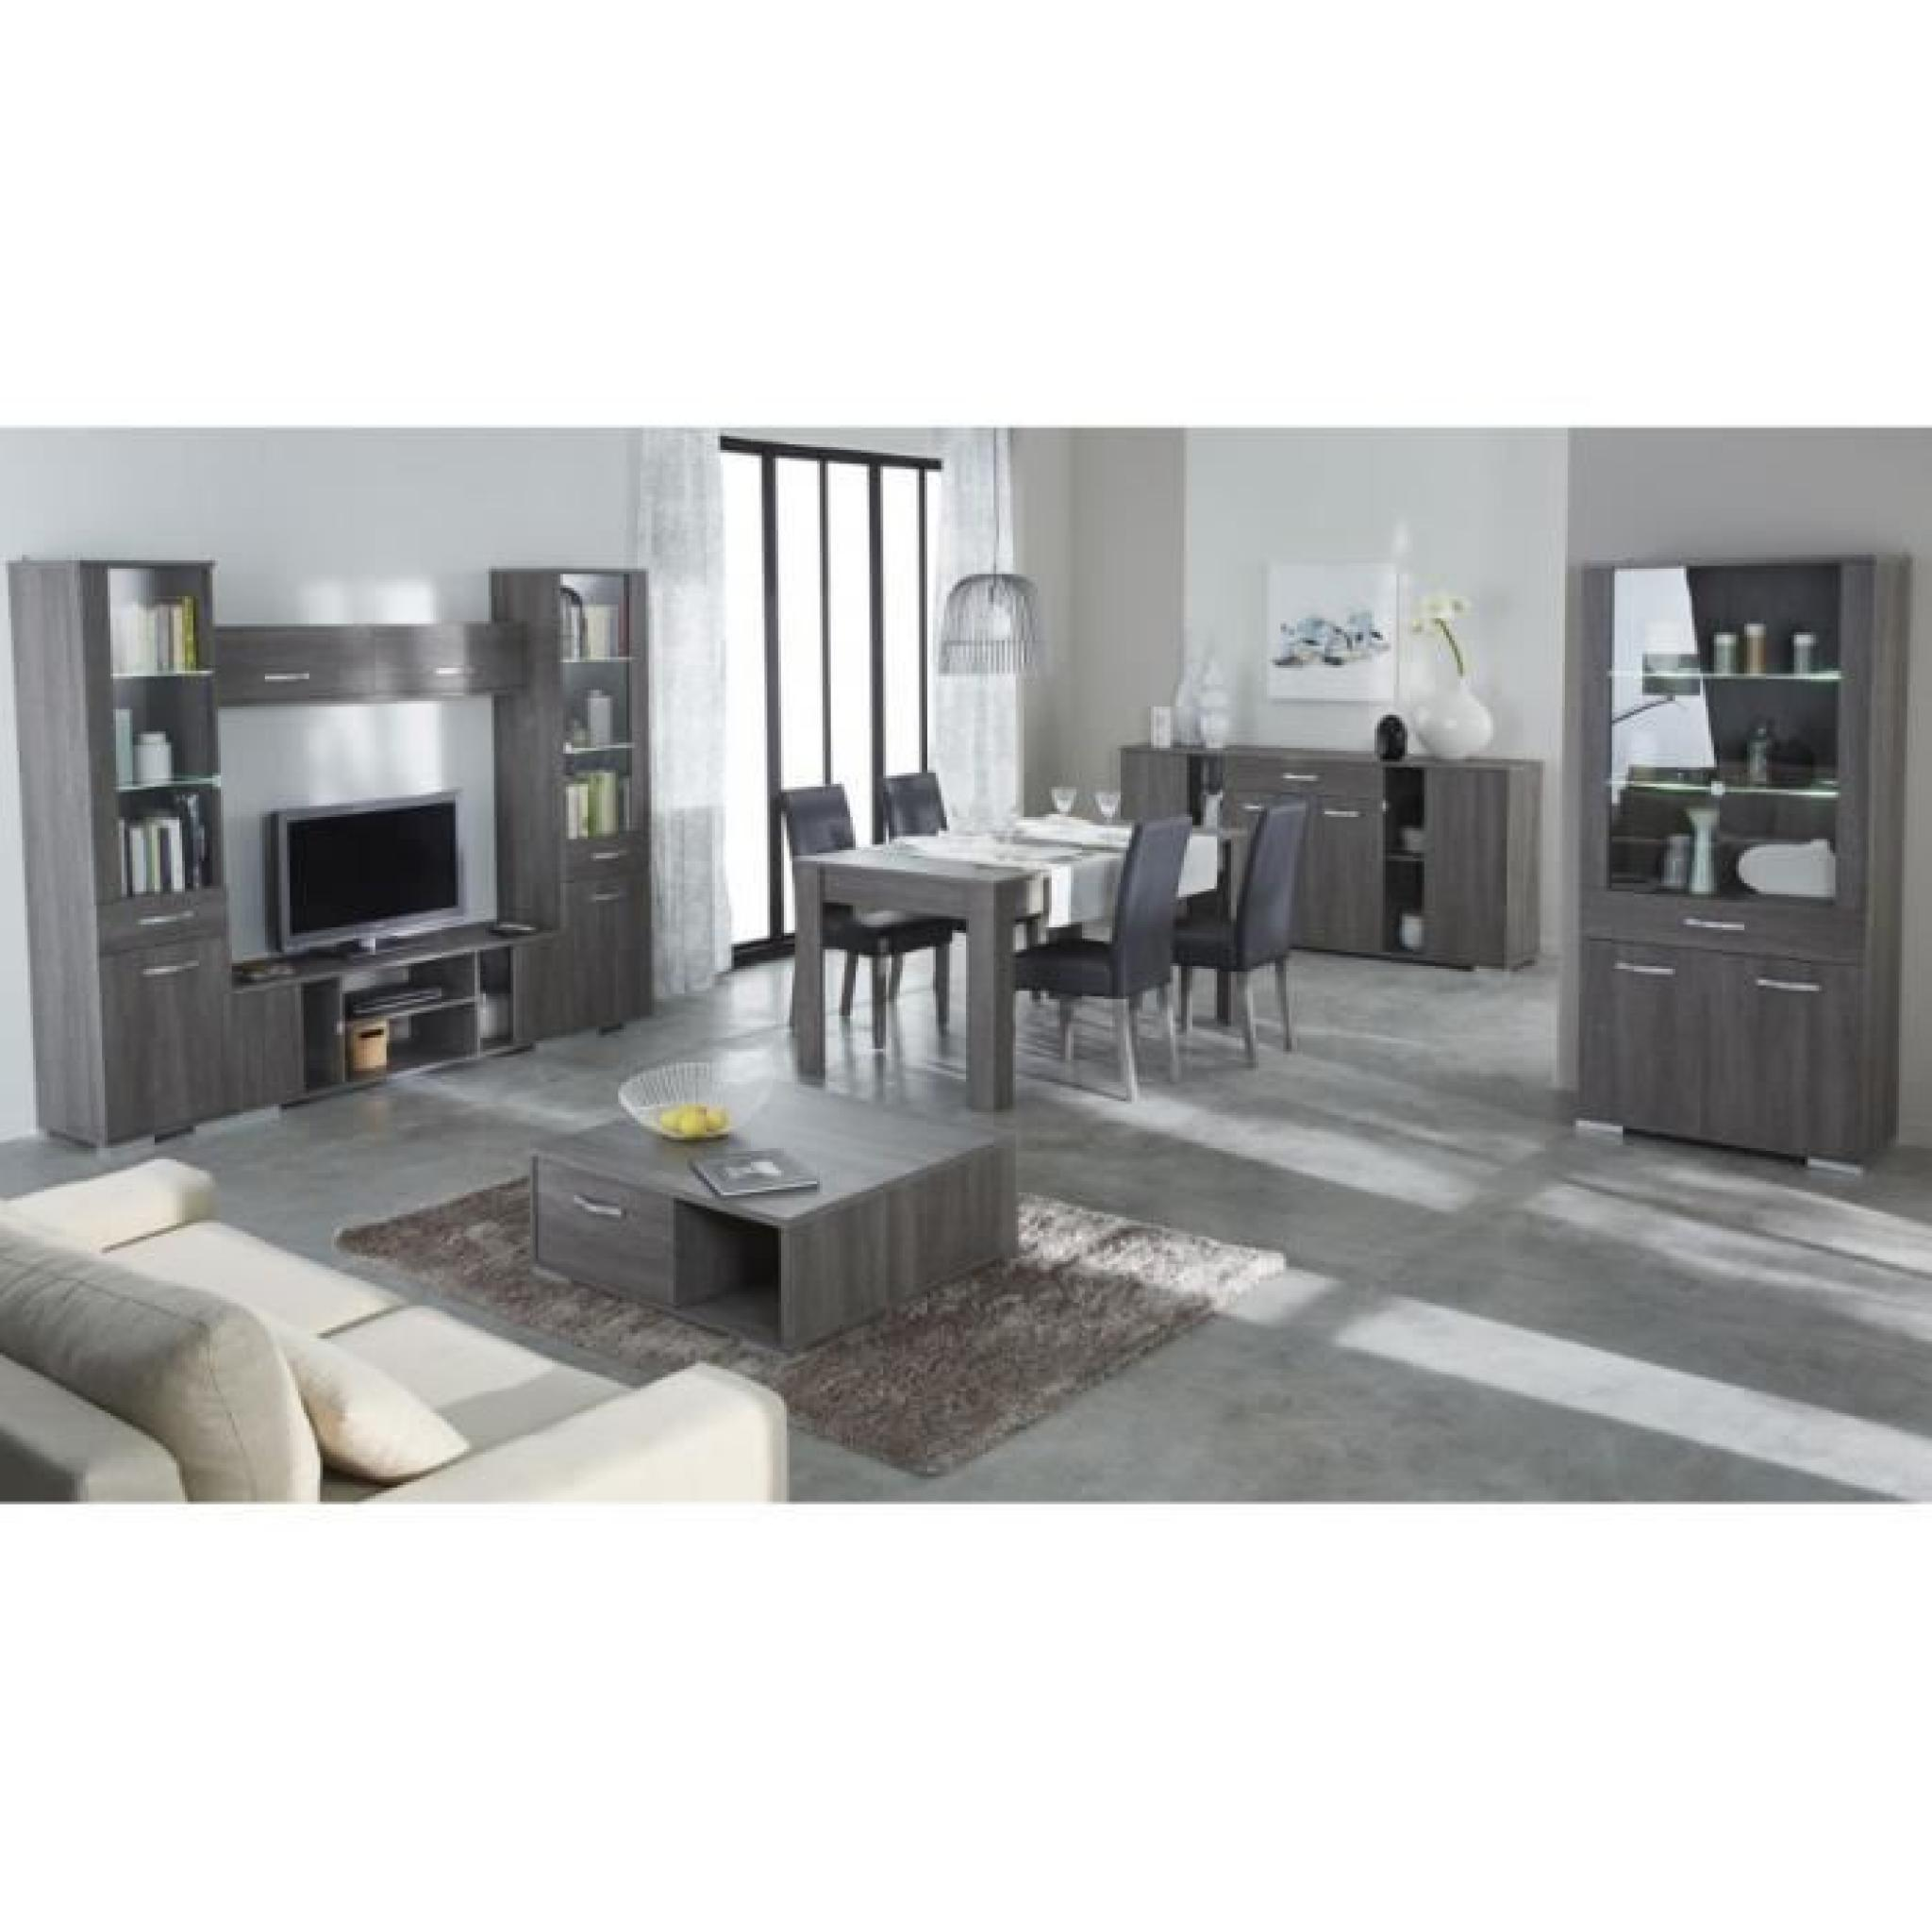 enfilade 4 portes 1 tiroirs namur achat vente buffet pas cher couleur et. Black Bedroom Furniture Sets. Home Design Ideas